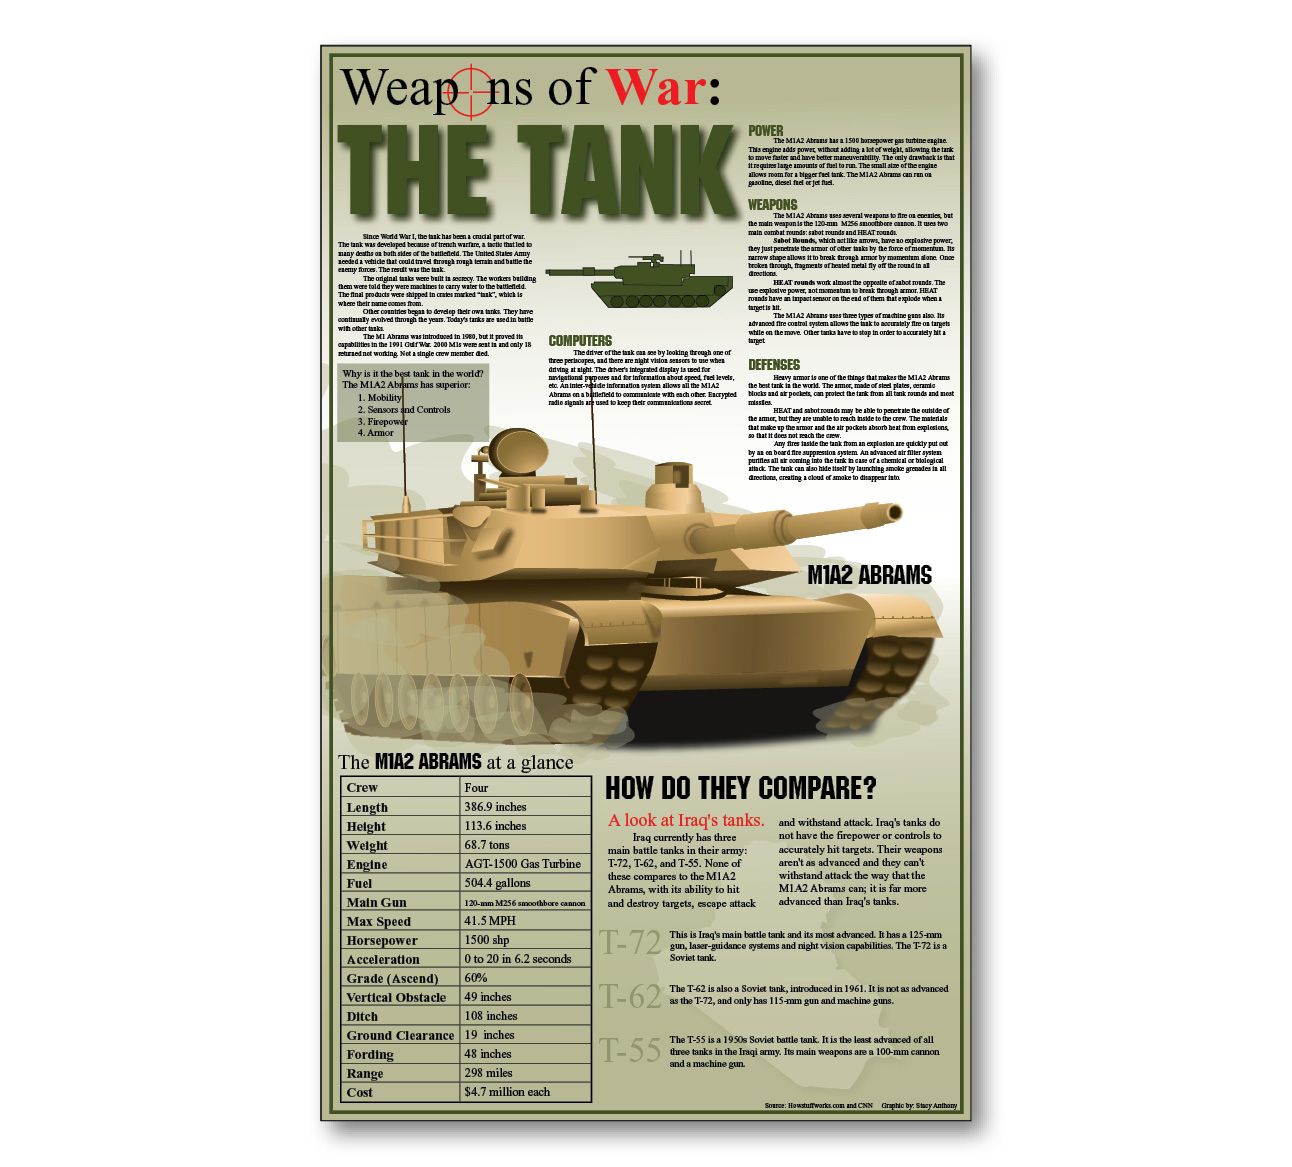 Since world war 1, the tank has been a crucial part of war. The tank was developed because of trench warfire, a battle that led to many deaths on both […]